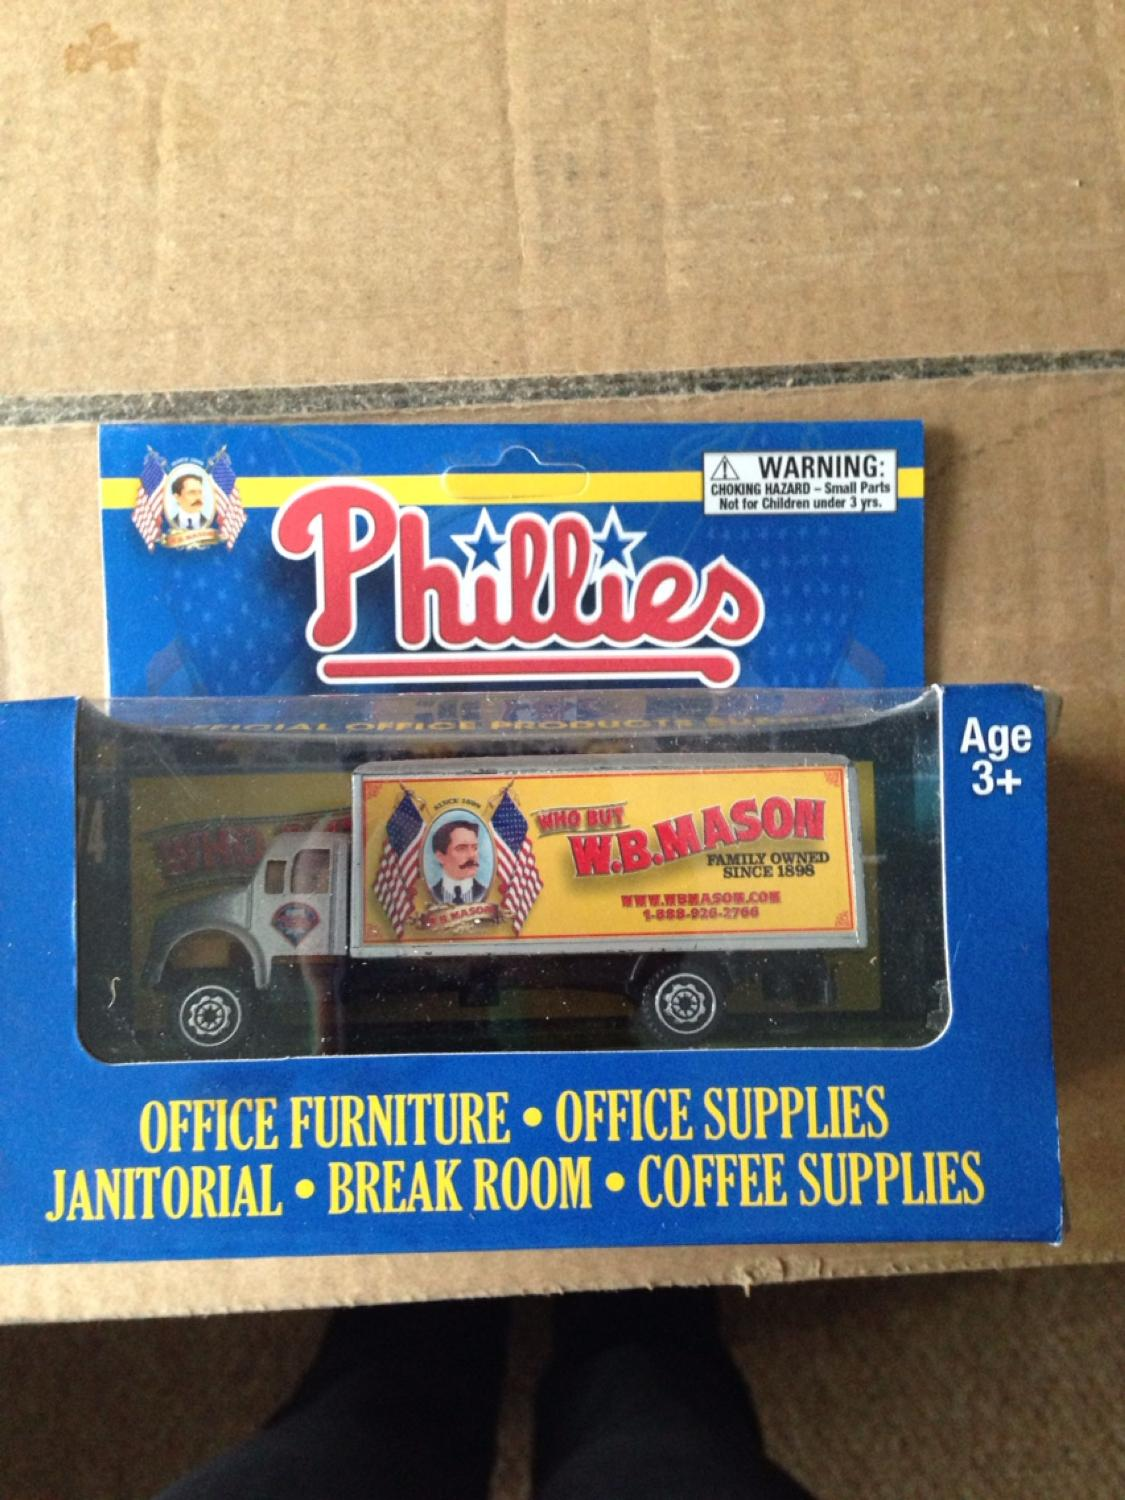 Phillies WB Mason trucks